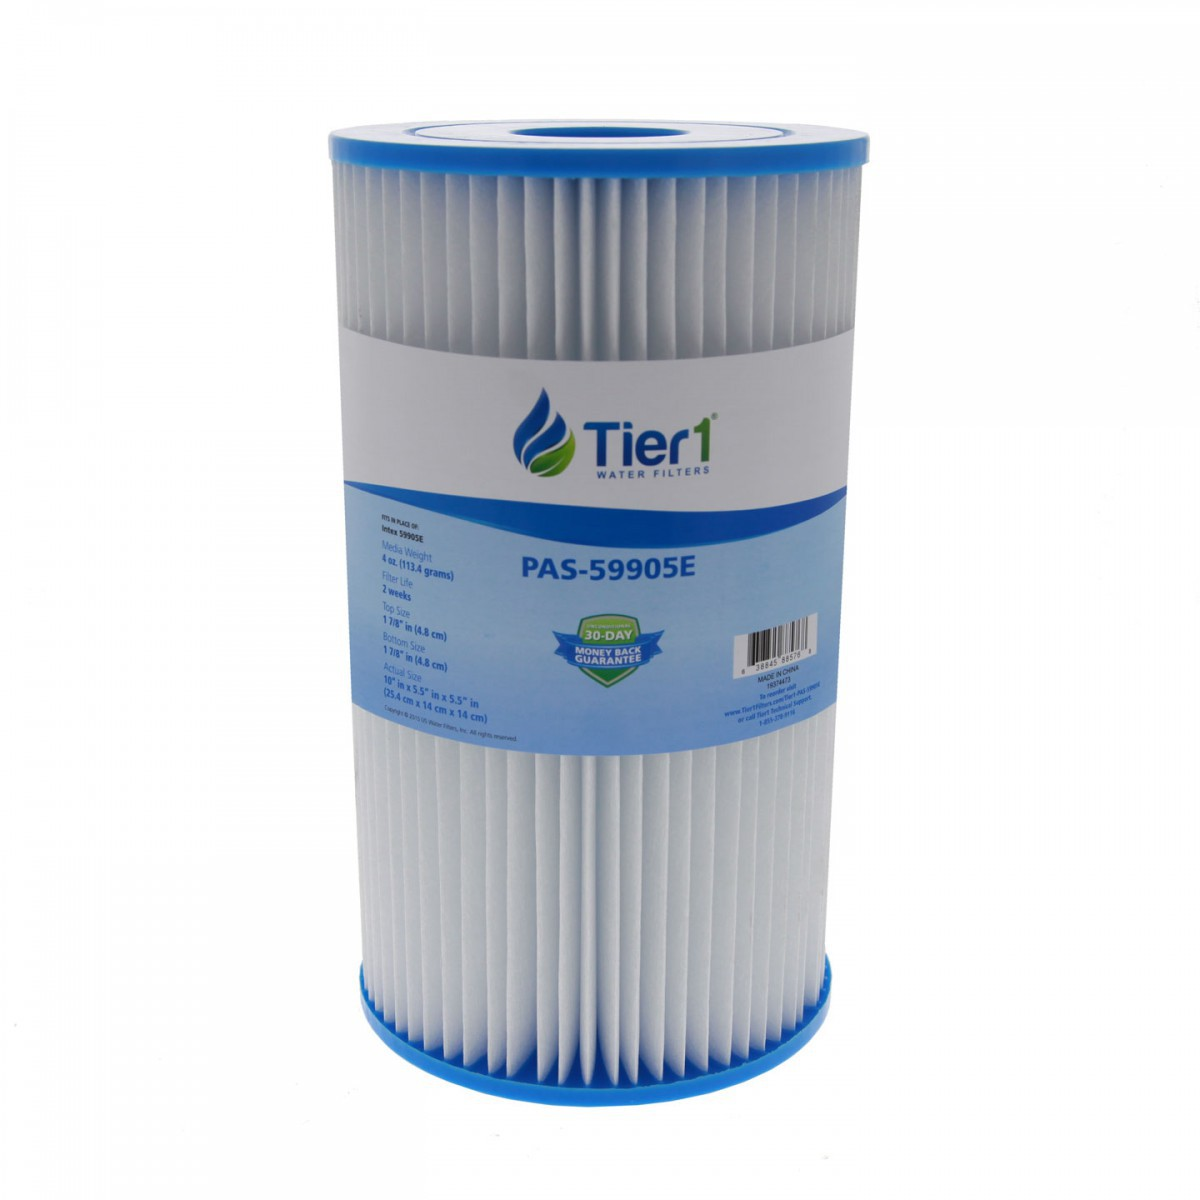 Home > Type B Intex Pool and Spa Filter Replacement by Tier1 #0E4288